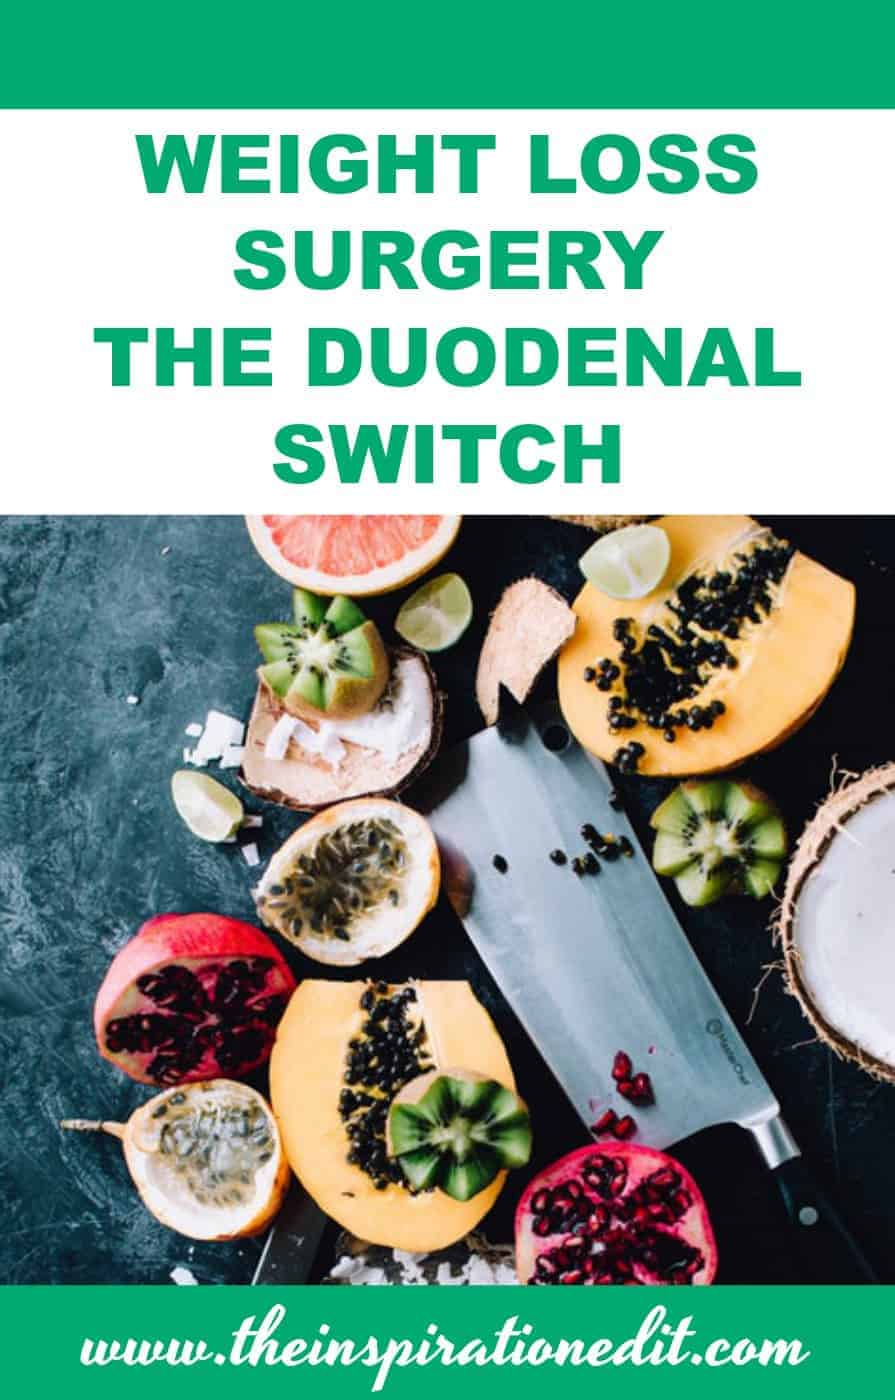 Duodenal Switch weight loss surgery